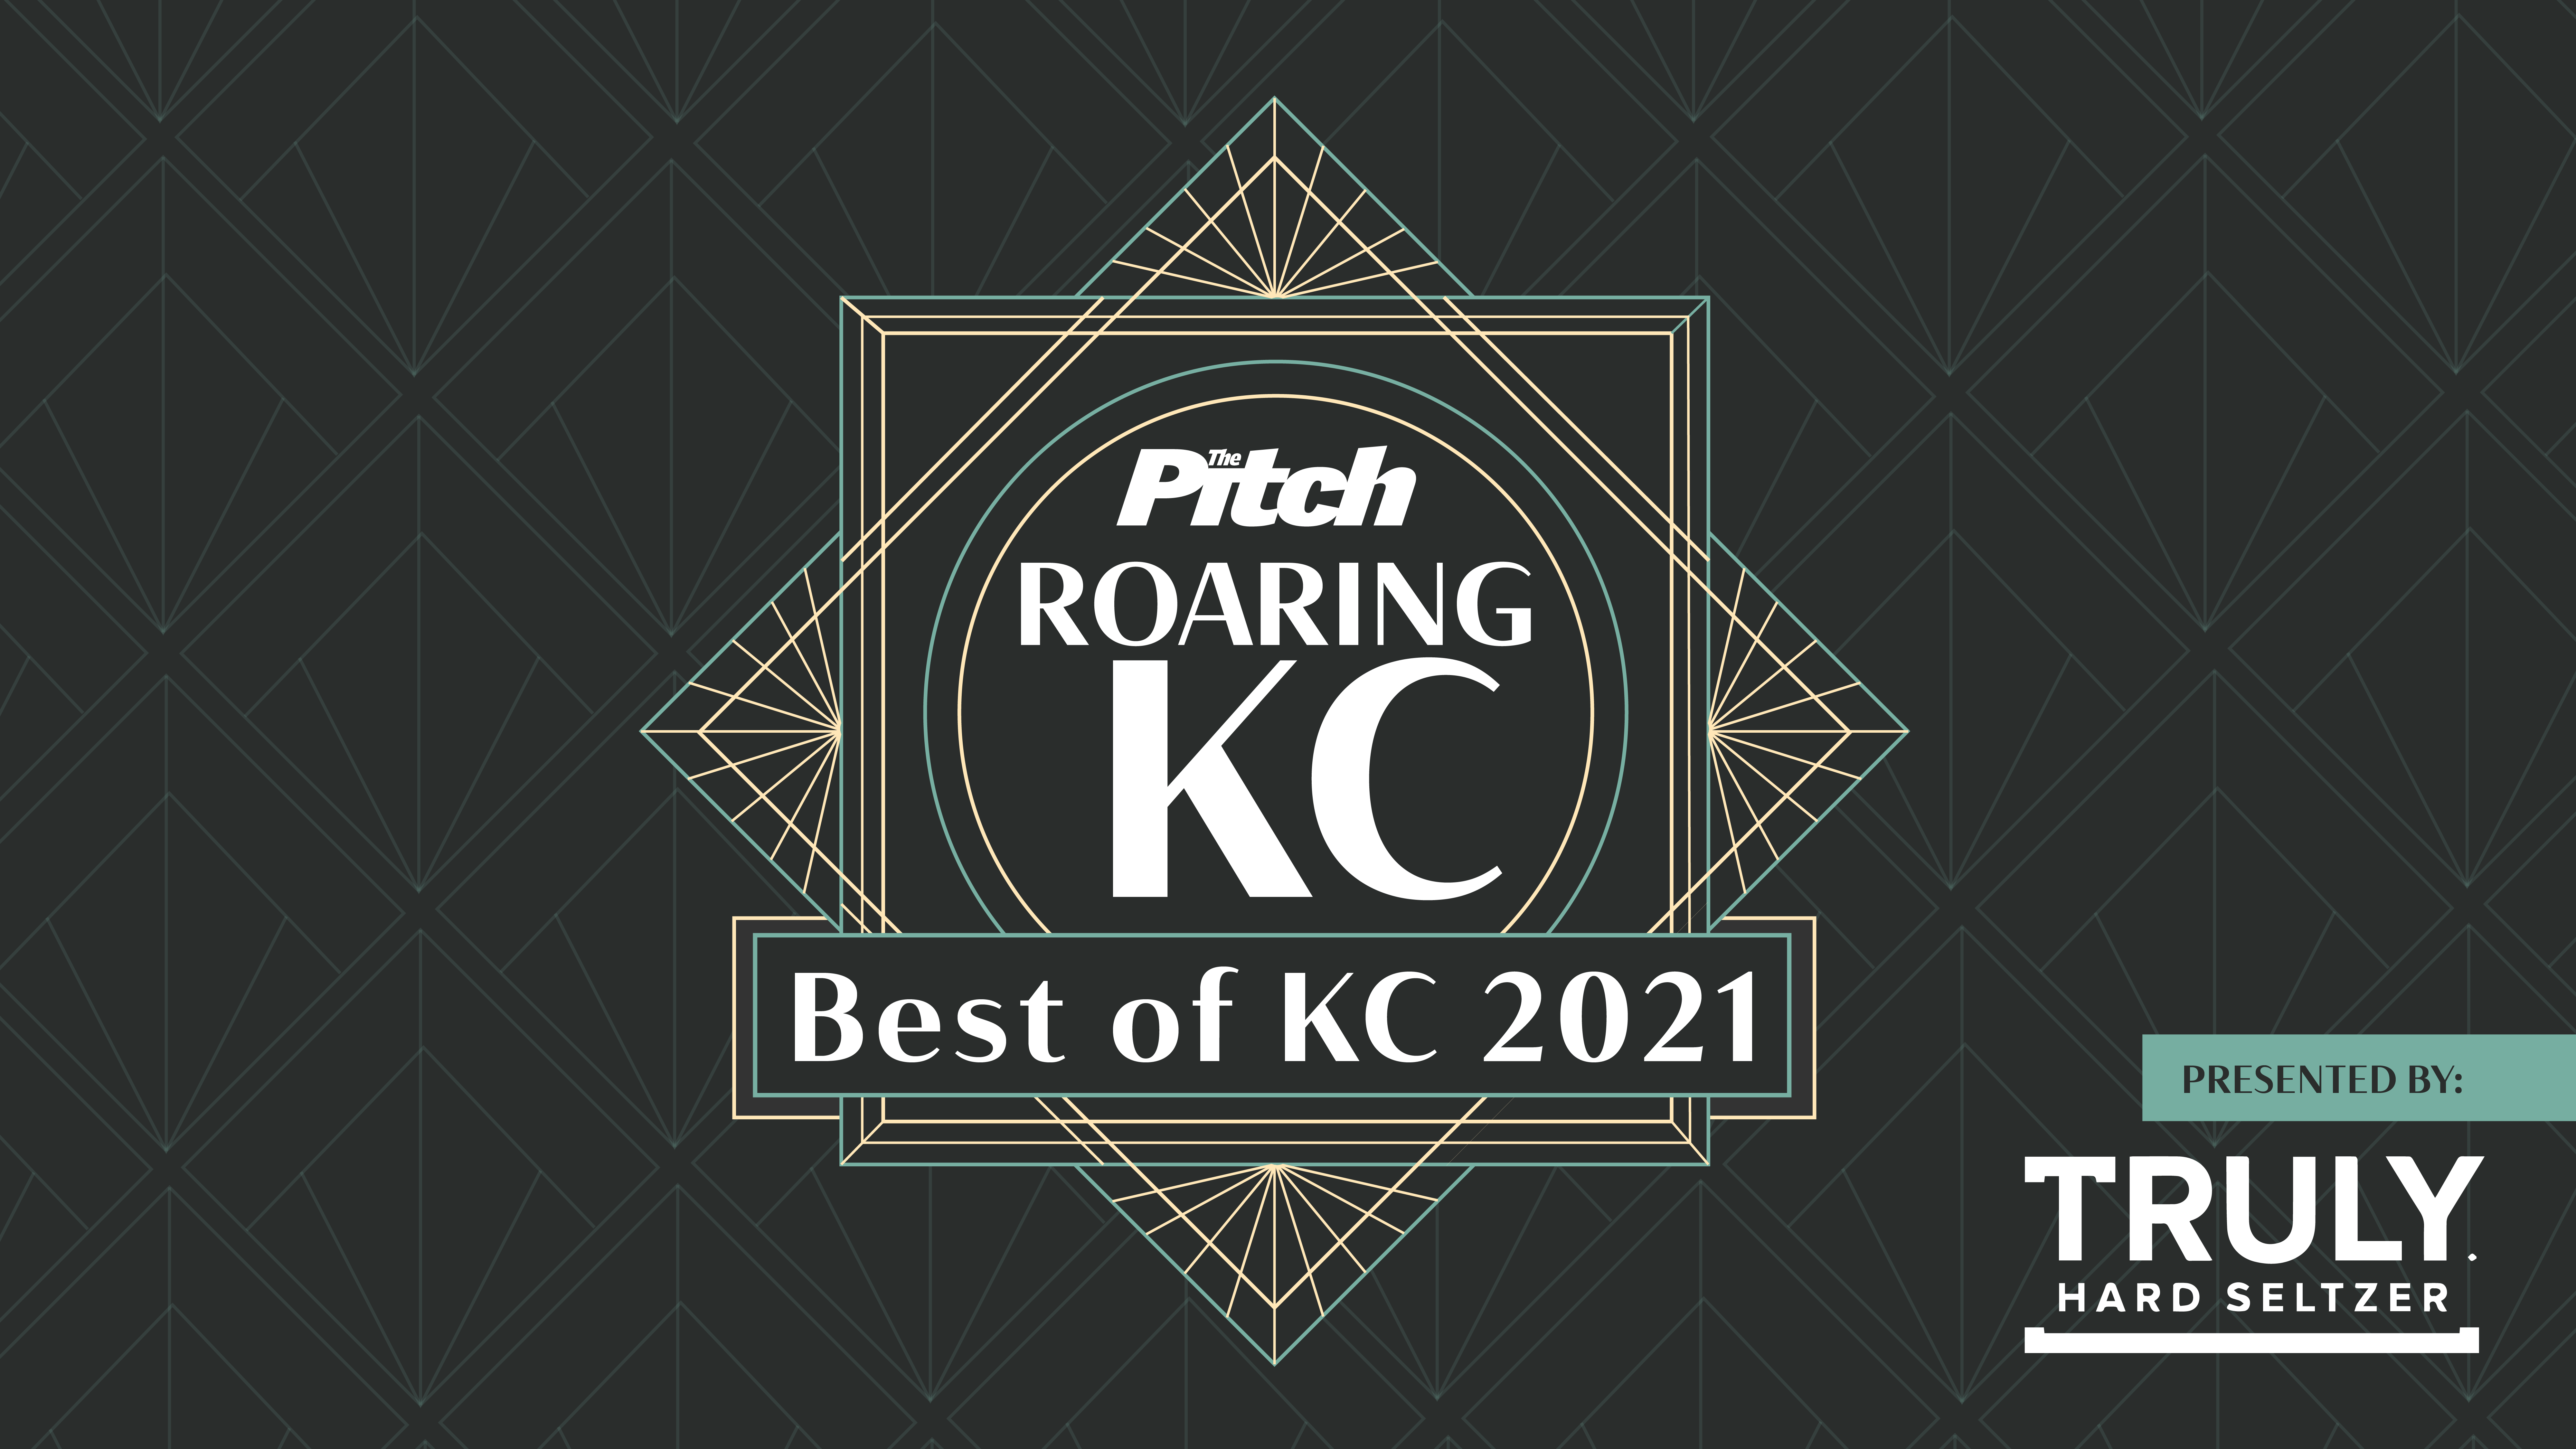 The Pitch Best of KC 2021